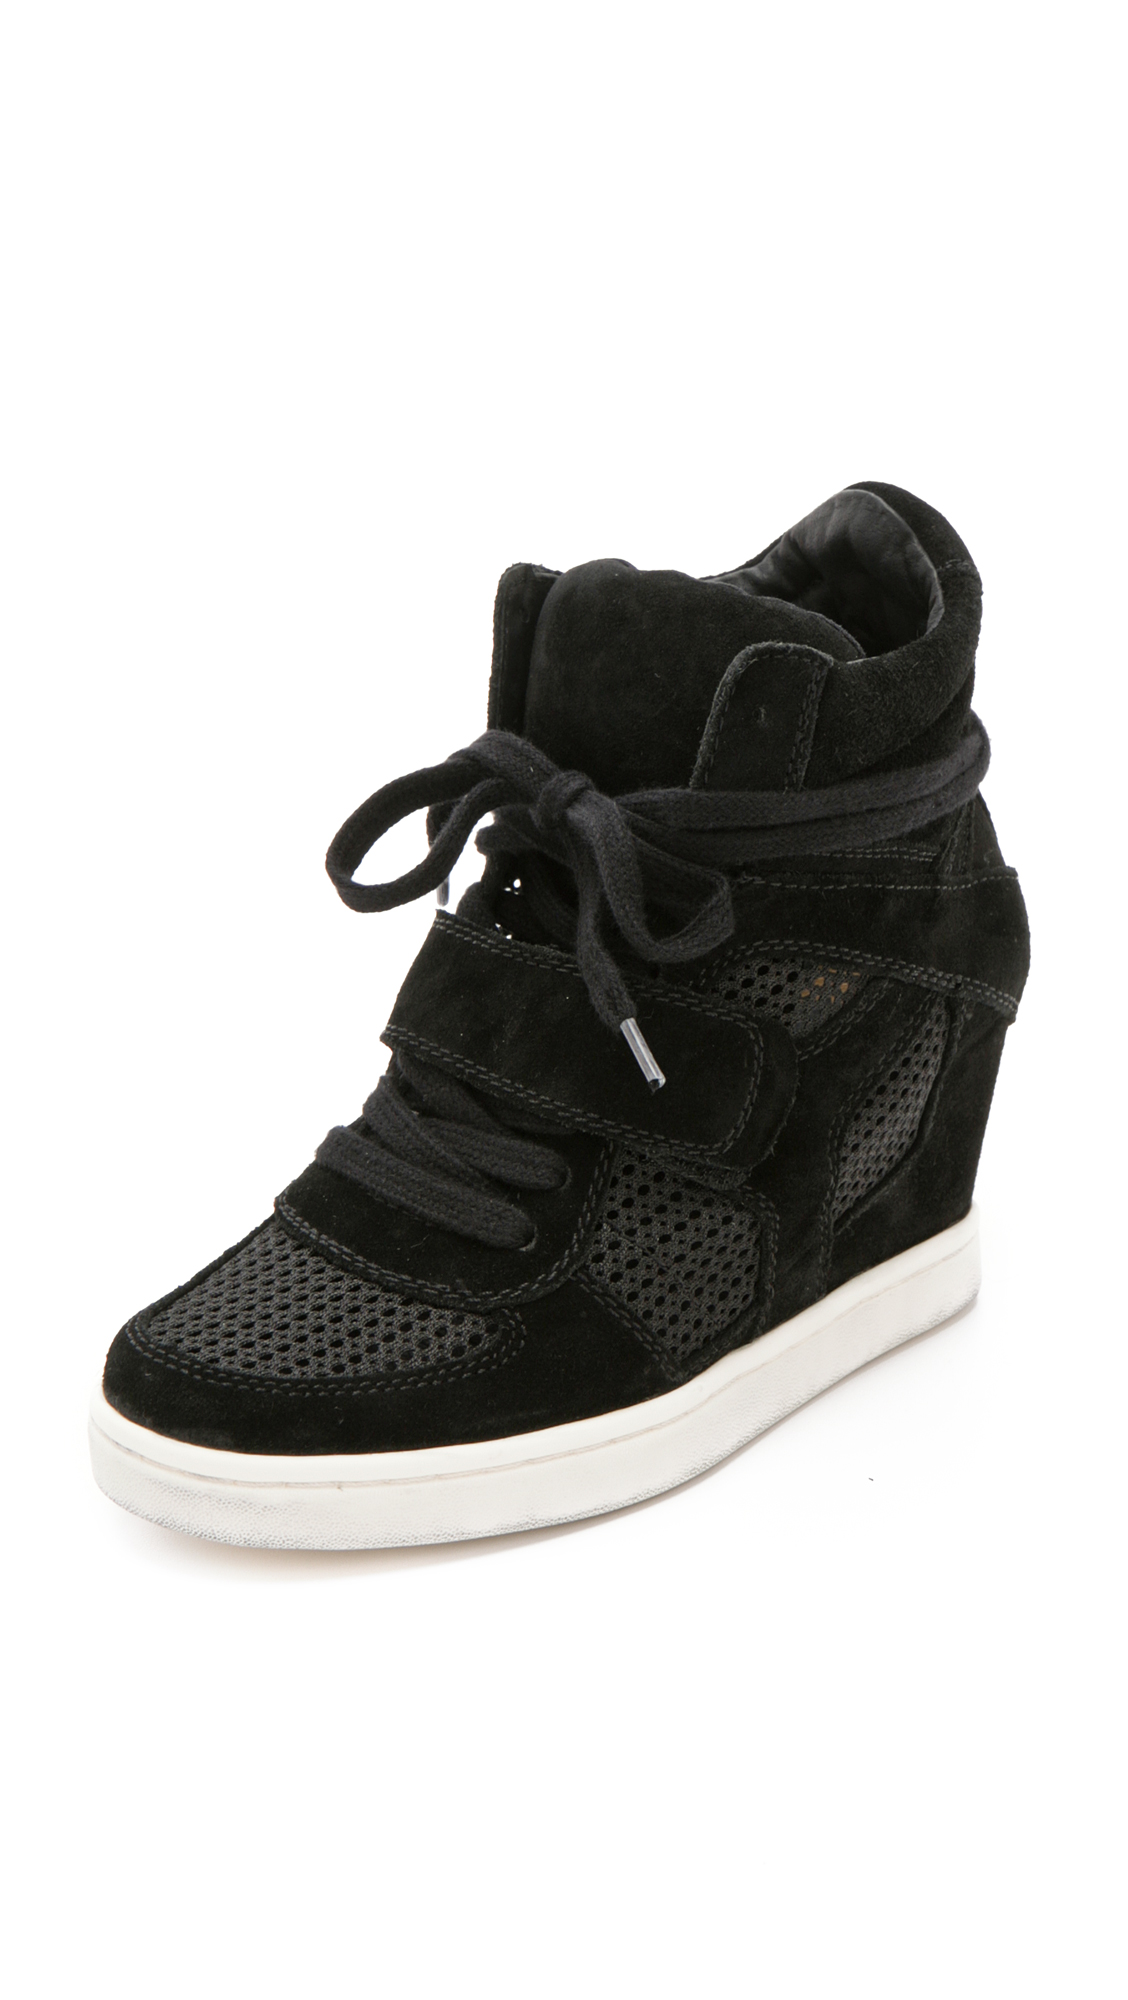 3374ecd6dca Ash Cool Wedge Sneakers with Mesh Insets